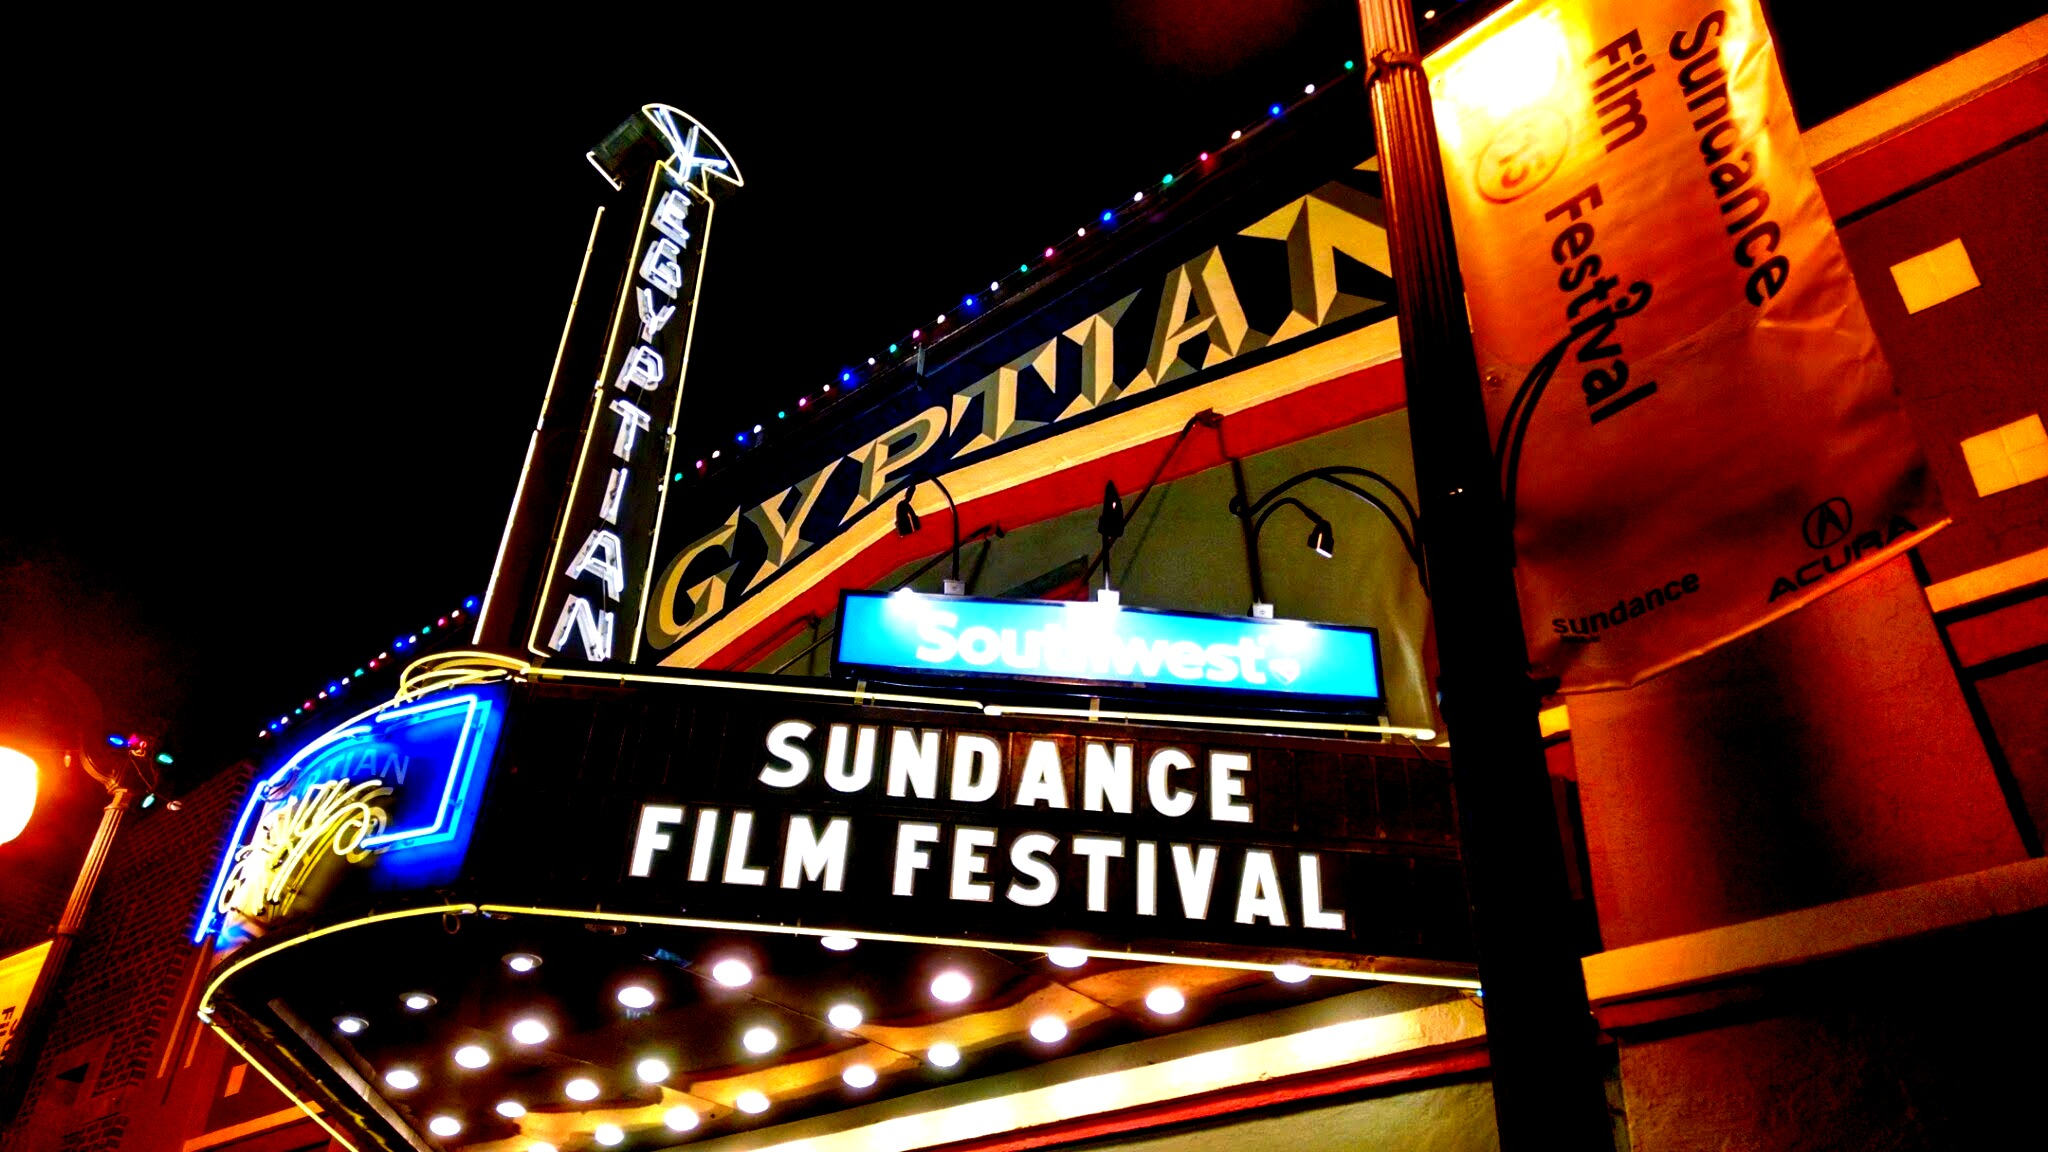 Sundance unveils their 2019 lineup including the Midnight section films